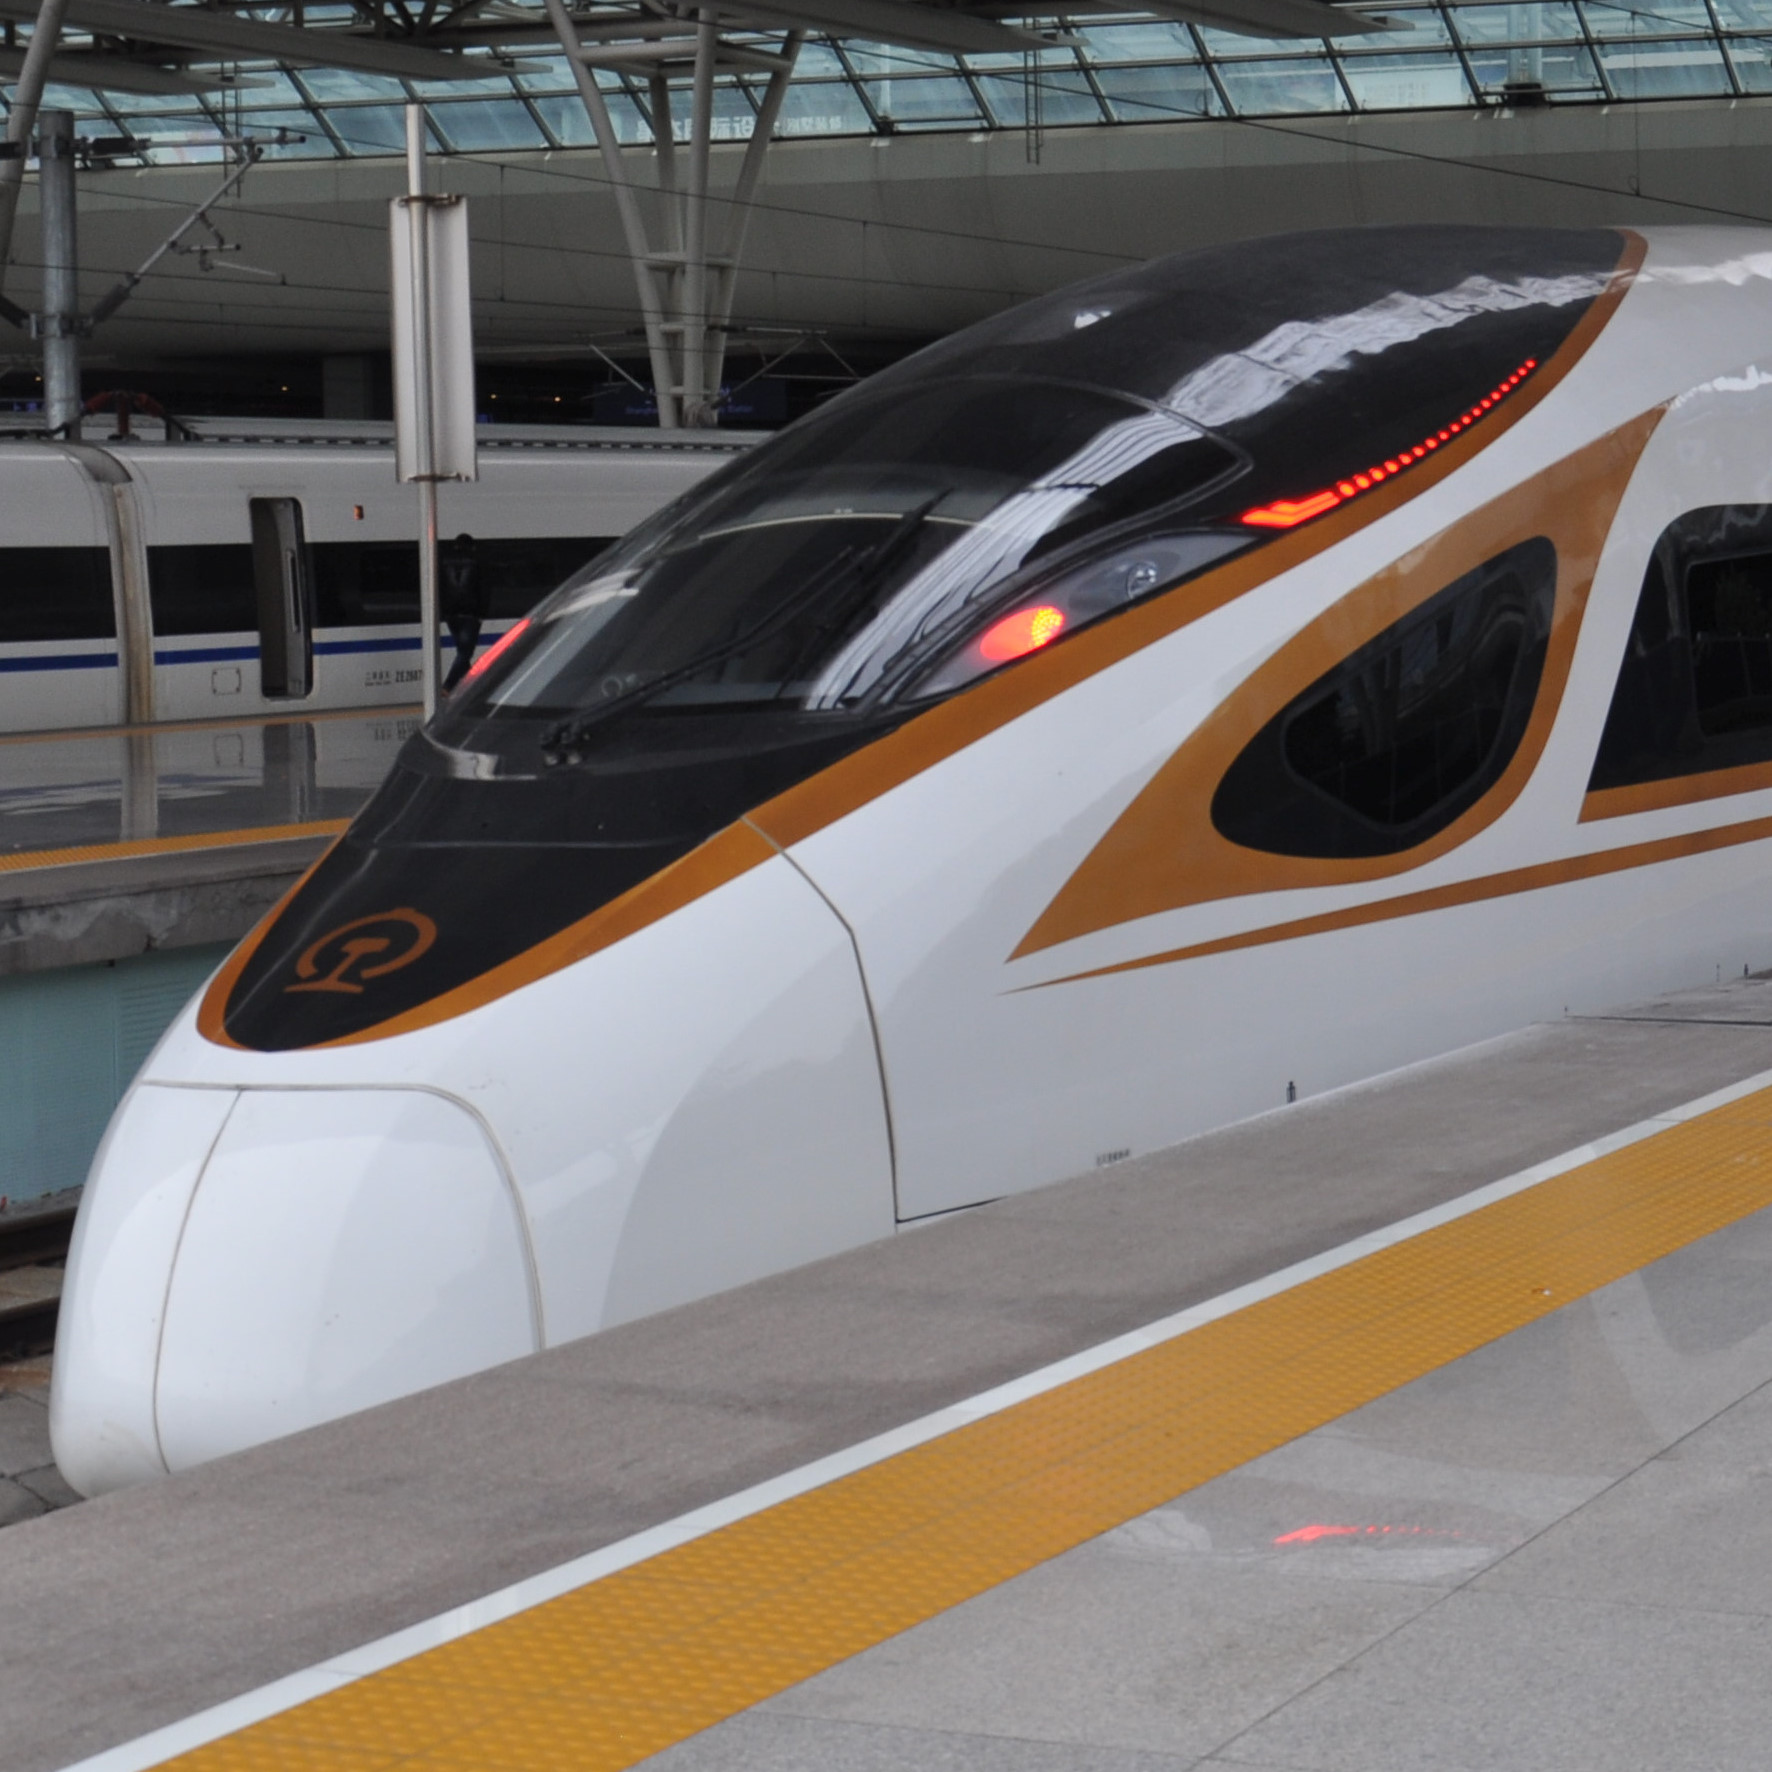 My train, a brand new CR400, waiting to take me from Shanghai to Beijing on the world's second-fastest passenger service in December 2017 (and the world's fastest intercity passenger service).